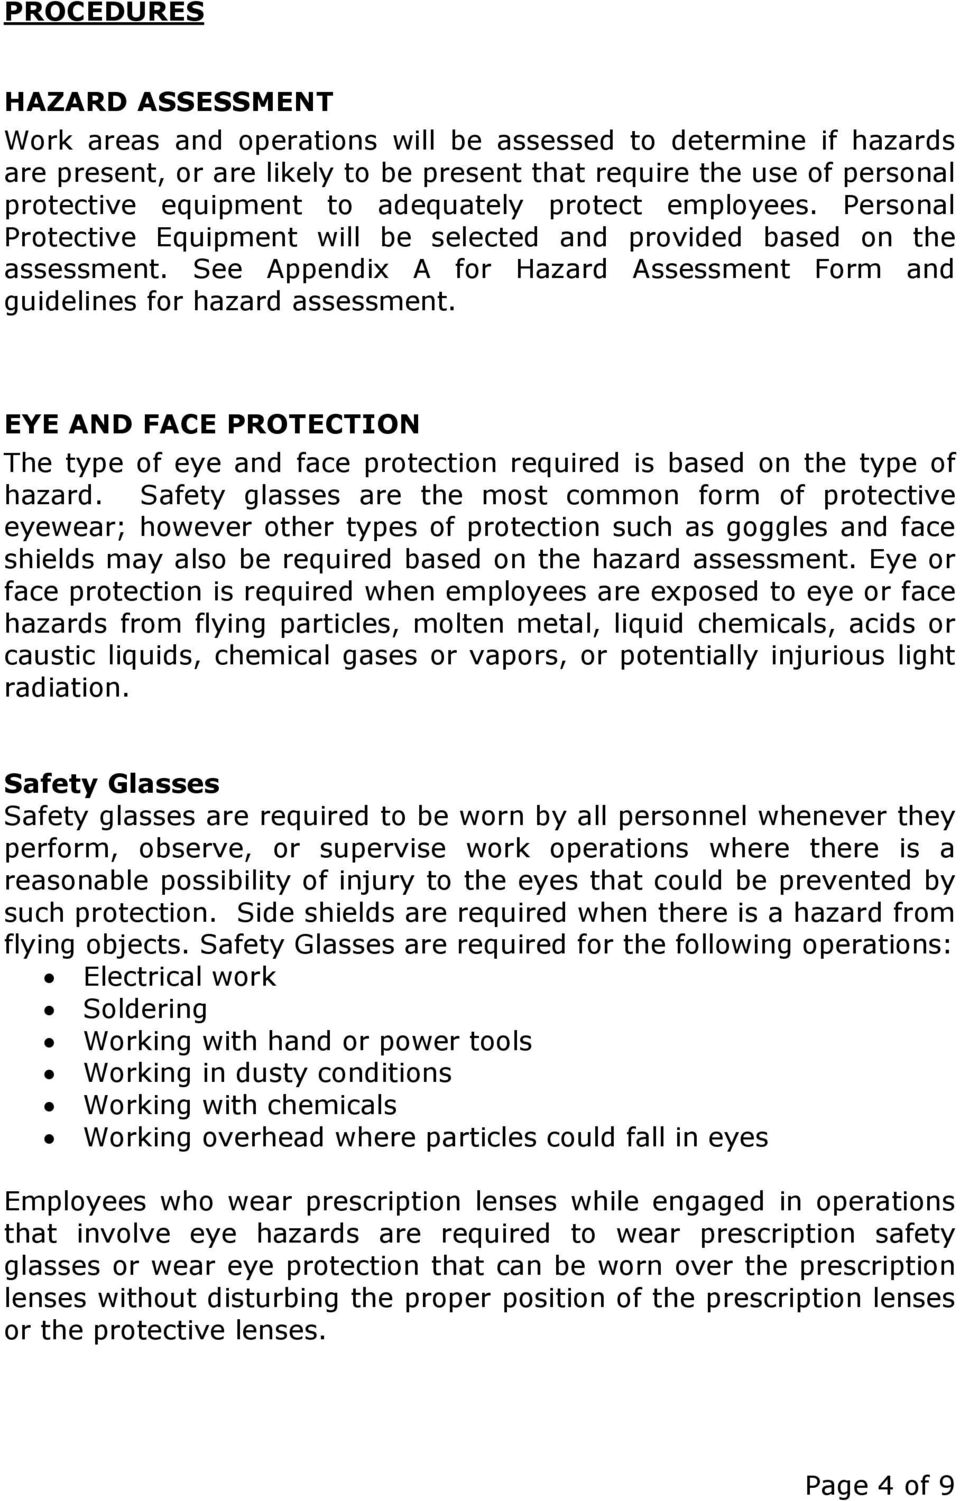 EYE AND FACE PROTECTION The type of eye and face protection required is based on the type of hazard.